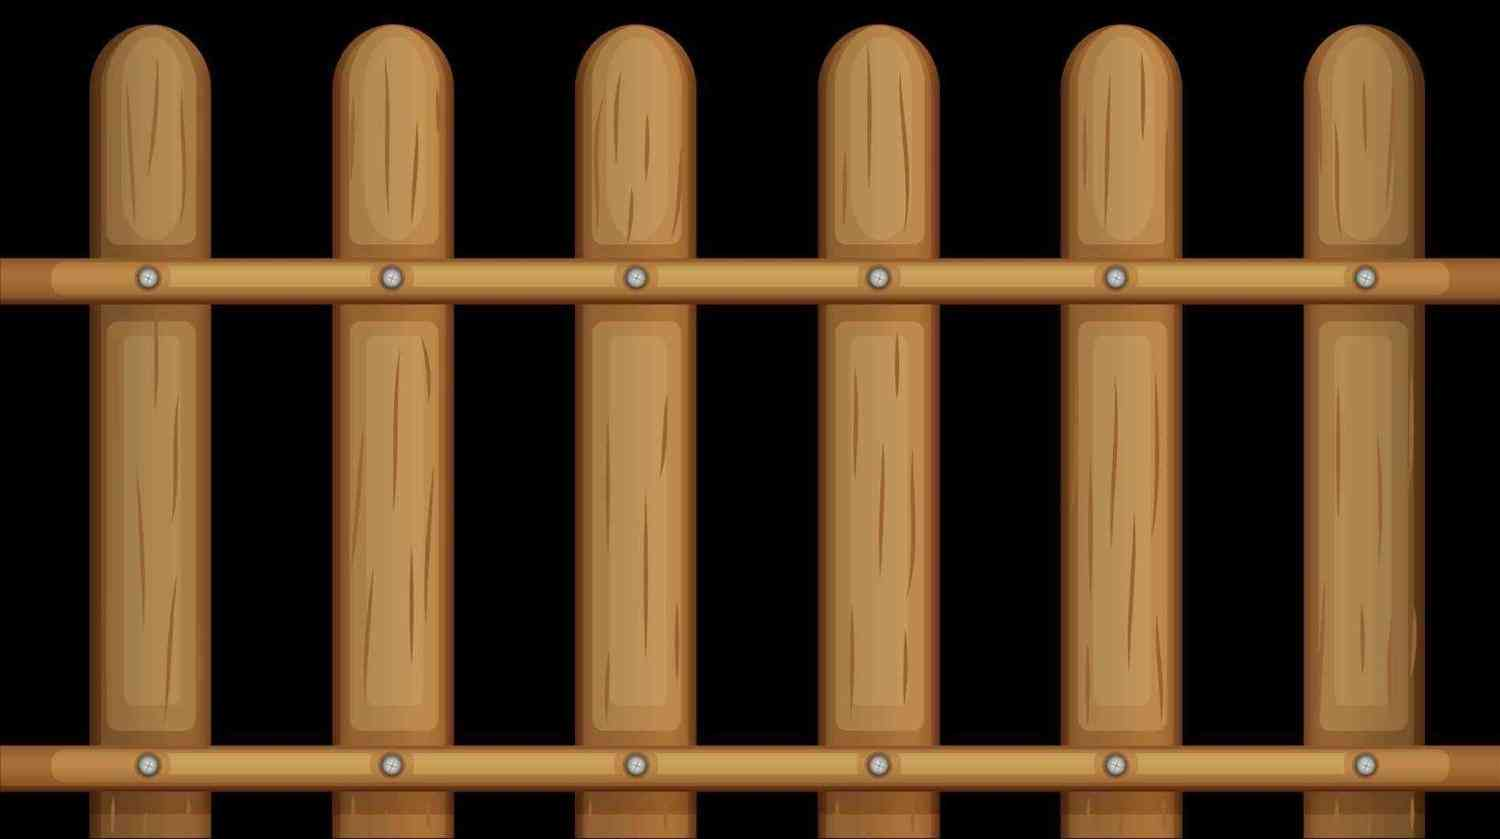 Gate clipart brown fence. With pencil and